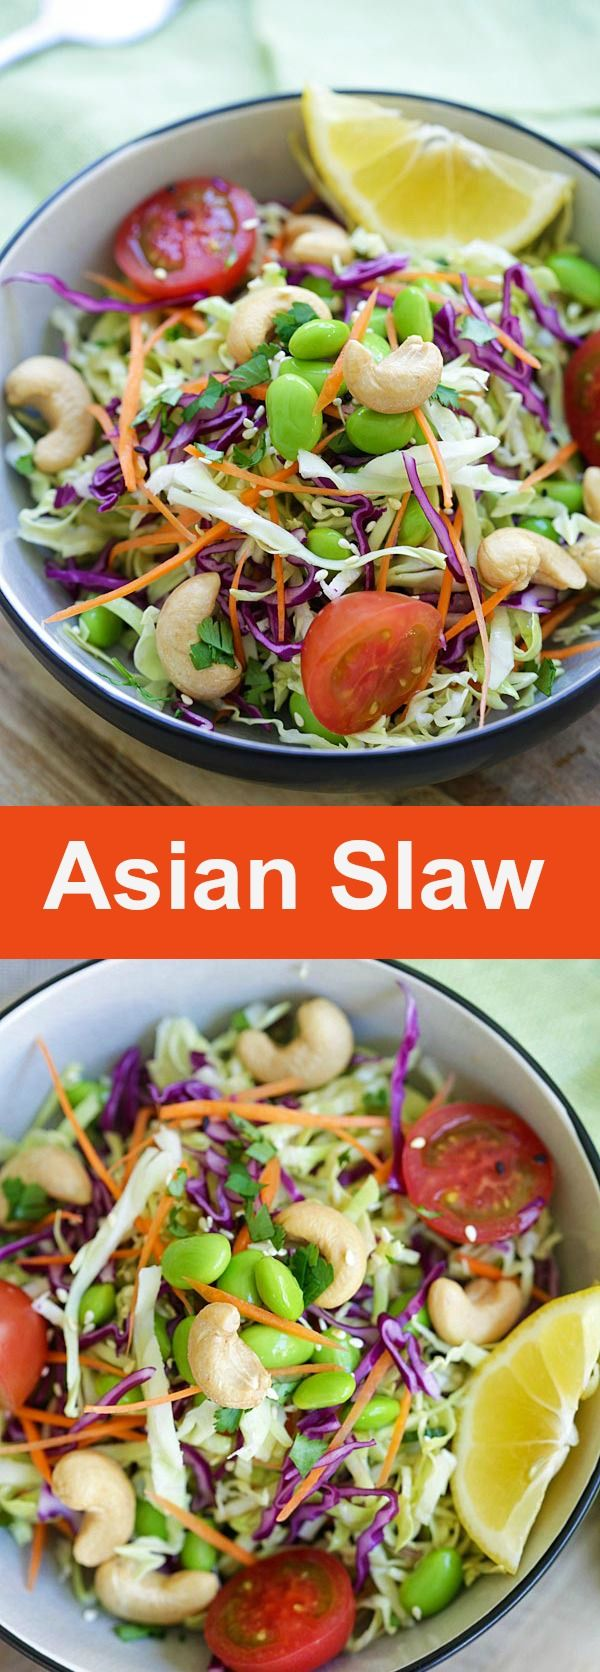 Asian Slaw – delicious Asian slaw recipe with soy sesame dressing. It's easy, low calories and refreshing. Healthy salad for the entire family | rasamalaysia.com